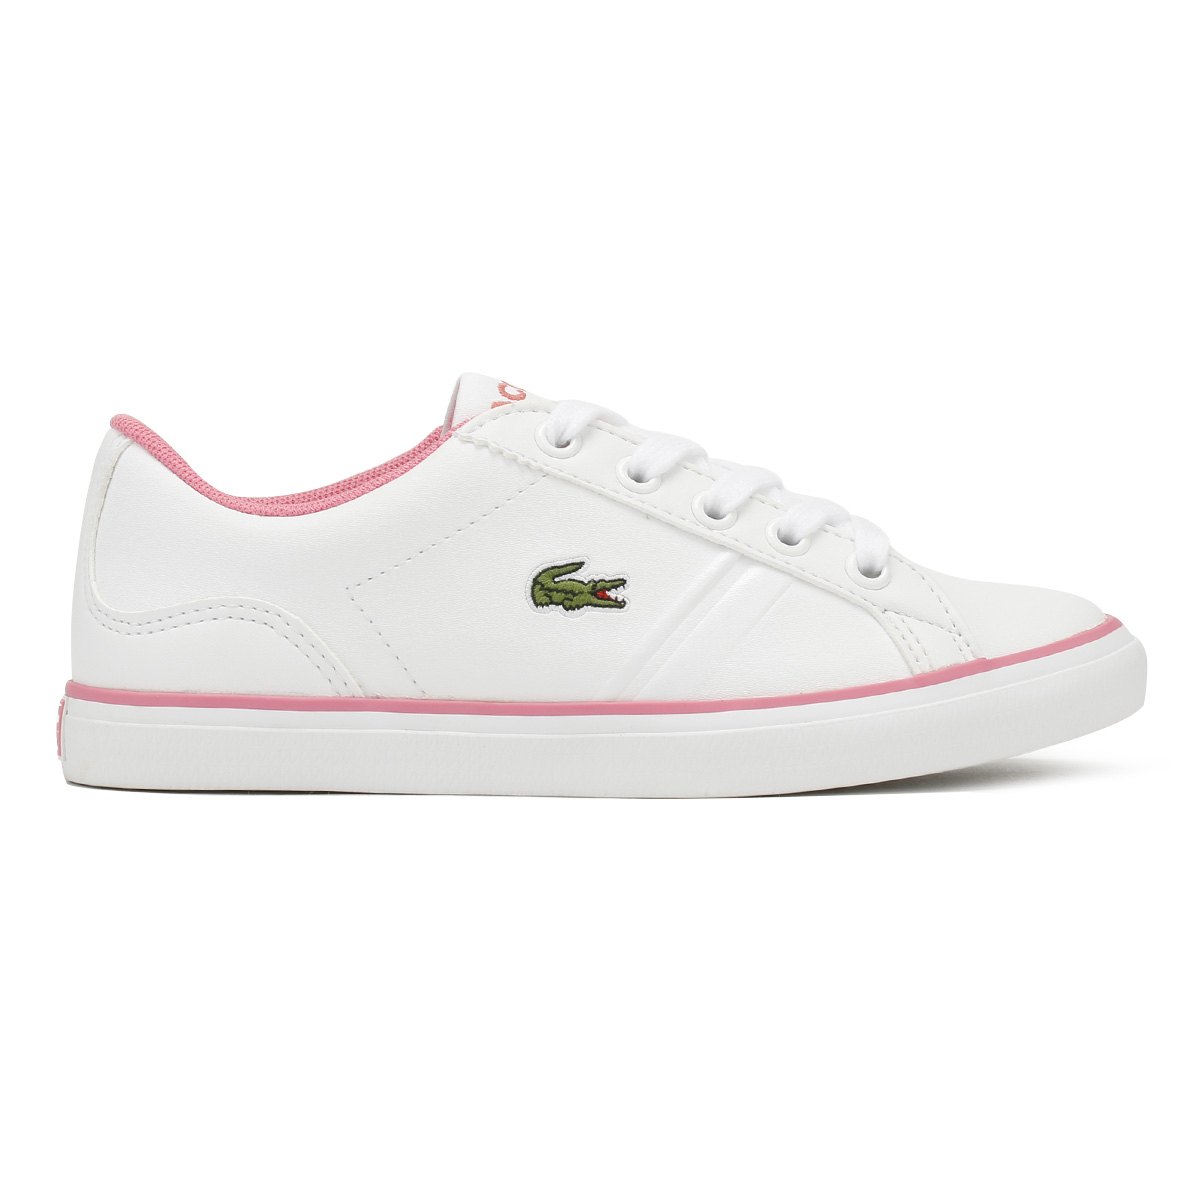 44c6eccf560566 Lacoste Junior Trainers White   Pink Lerond 218 2 Kids Girls Sport Casual  Shoes